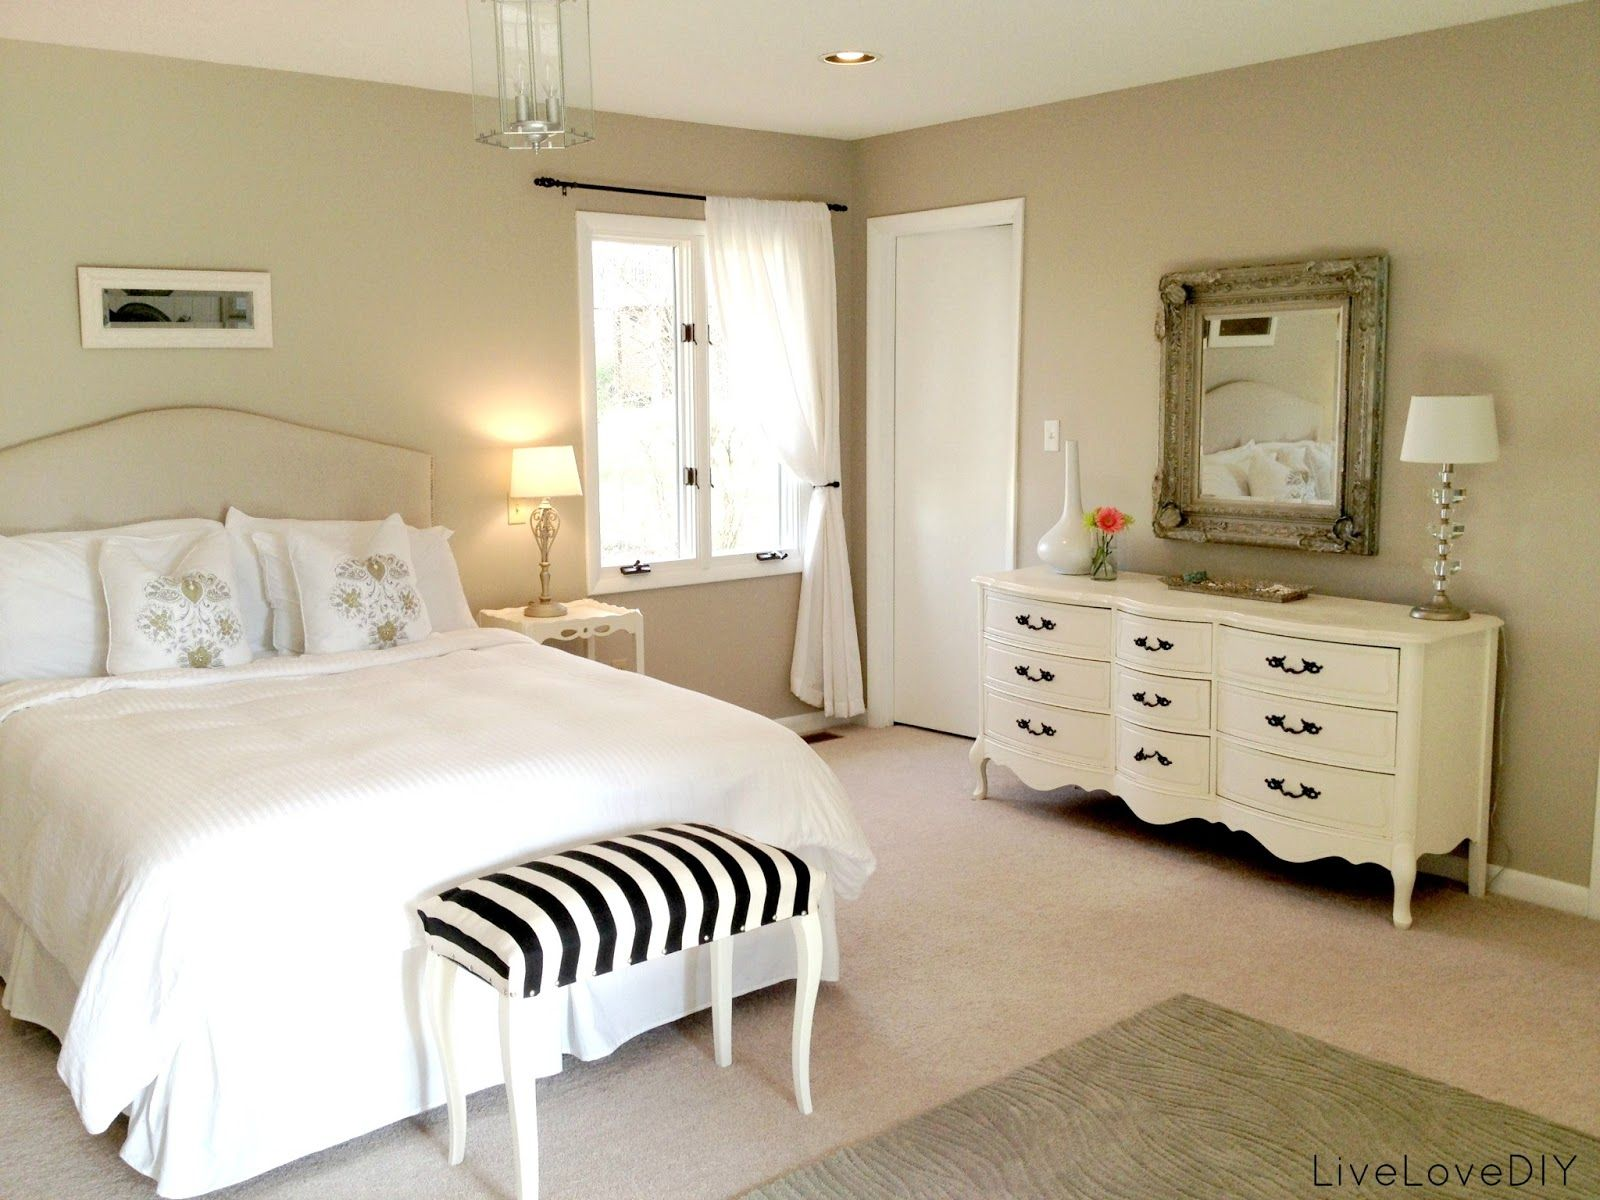 Yesterday I shared a few changes I made to our master bedroom ...